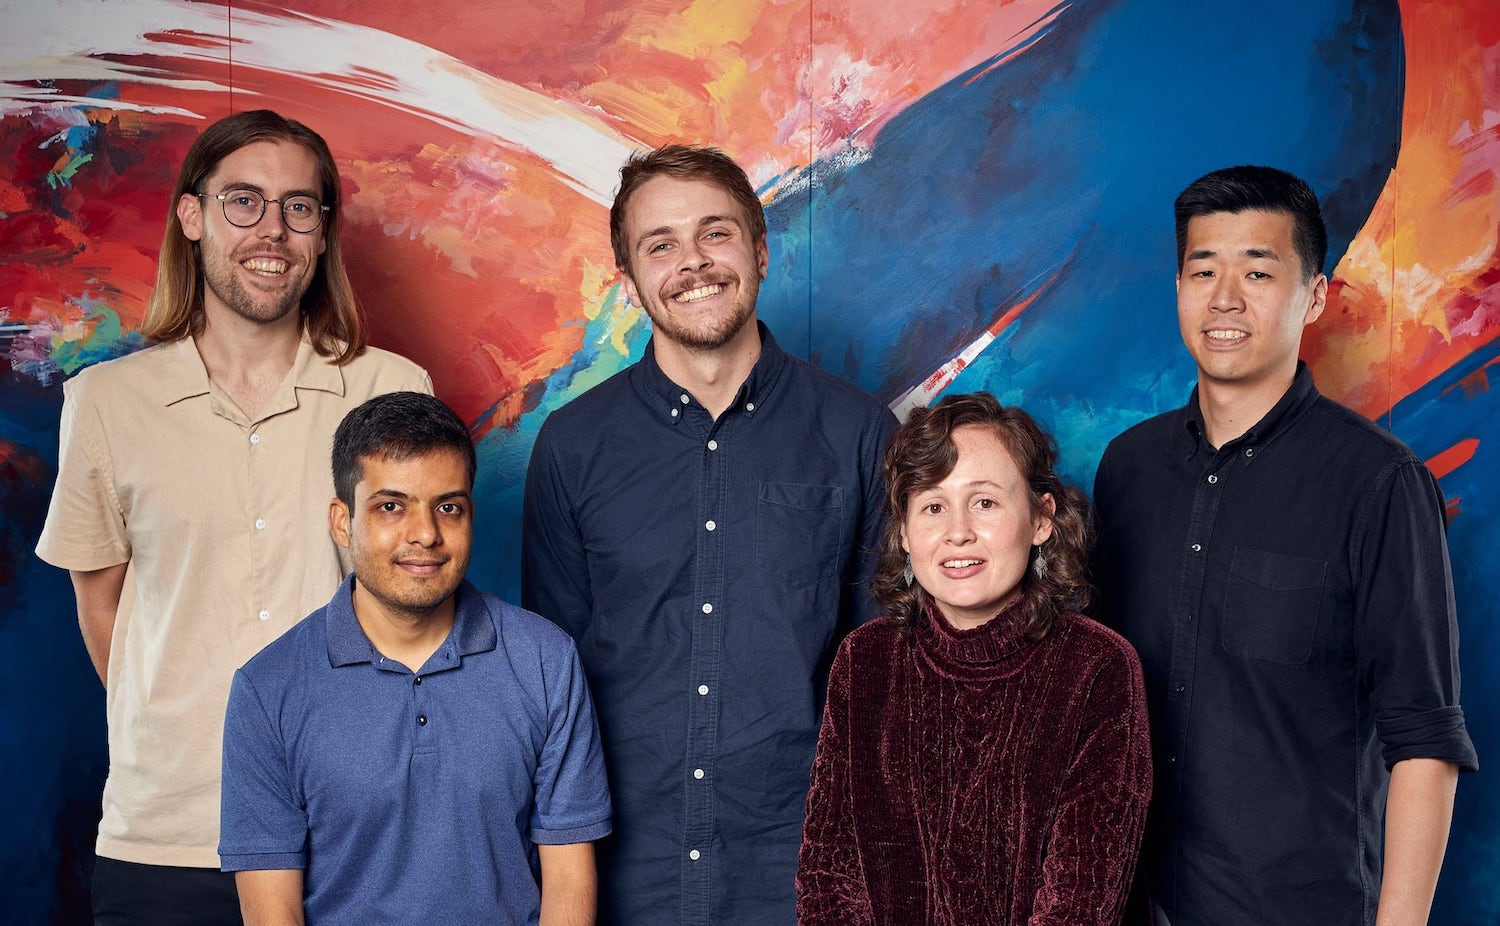 VMLY&R Melbourne bolsters strategy offering with hires across brand, digital, CX, data + social